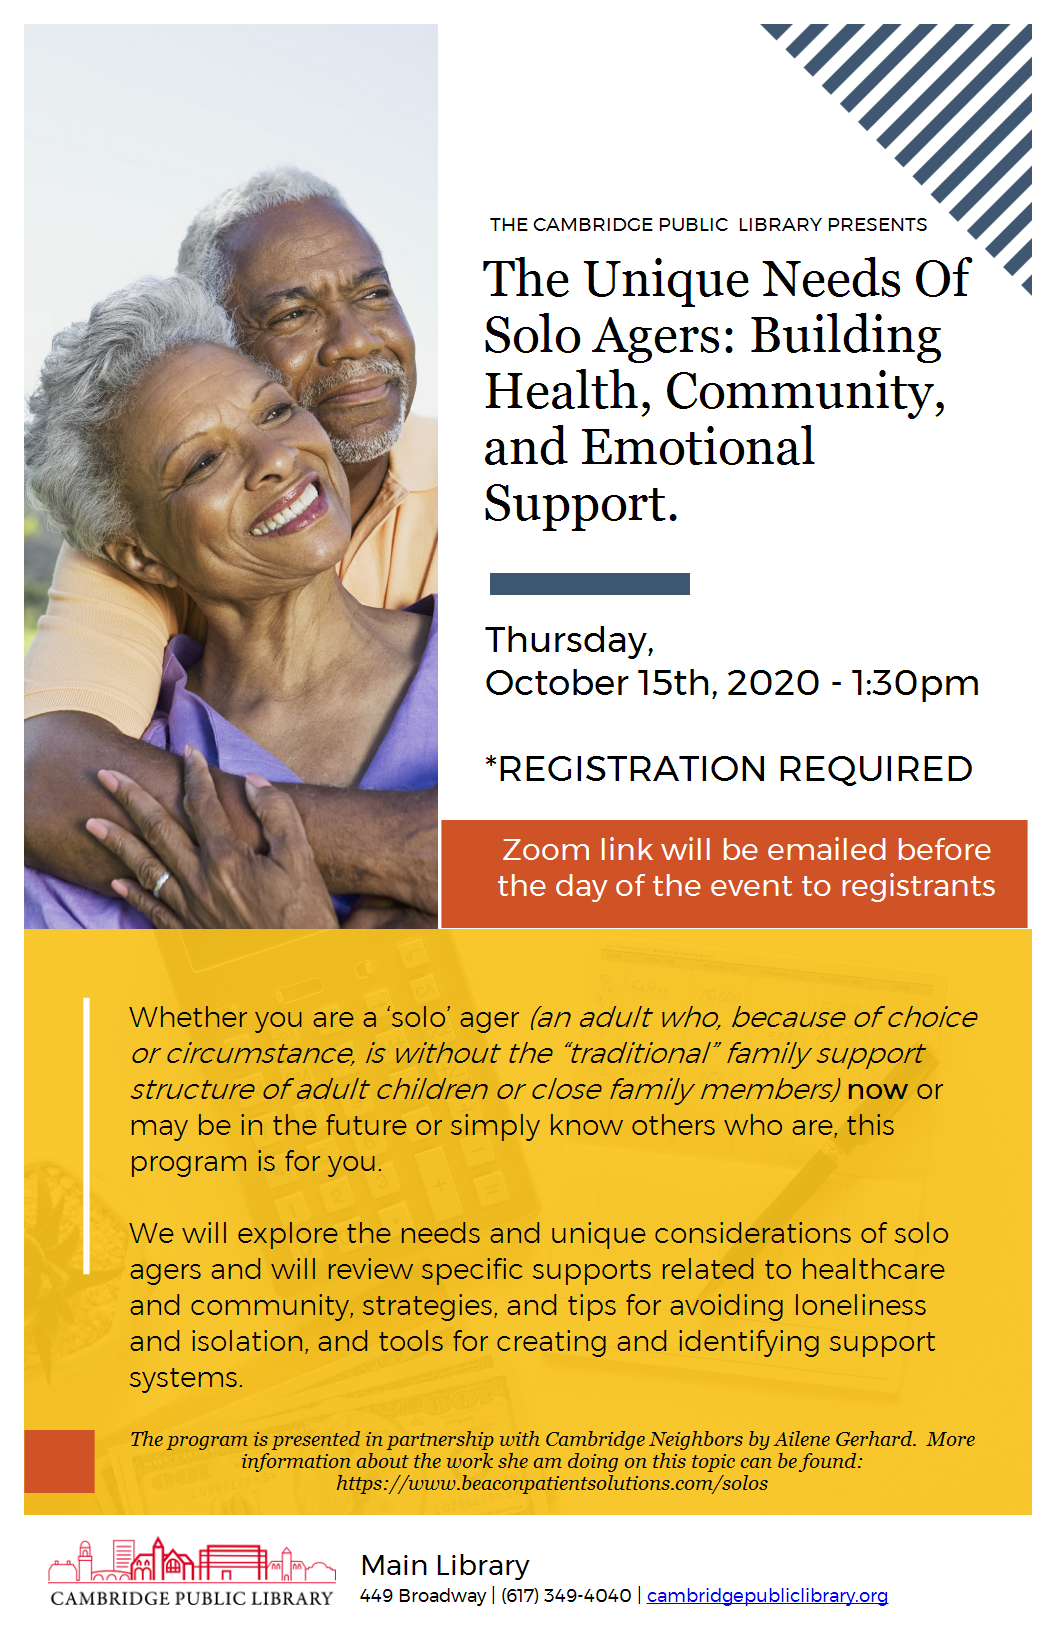 The Unique Needs Of Solo Agers: Building Health, Community, and Emotional Support